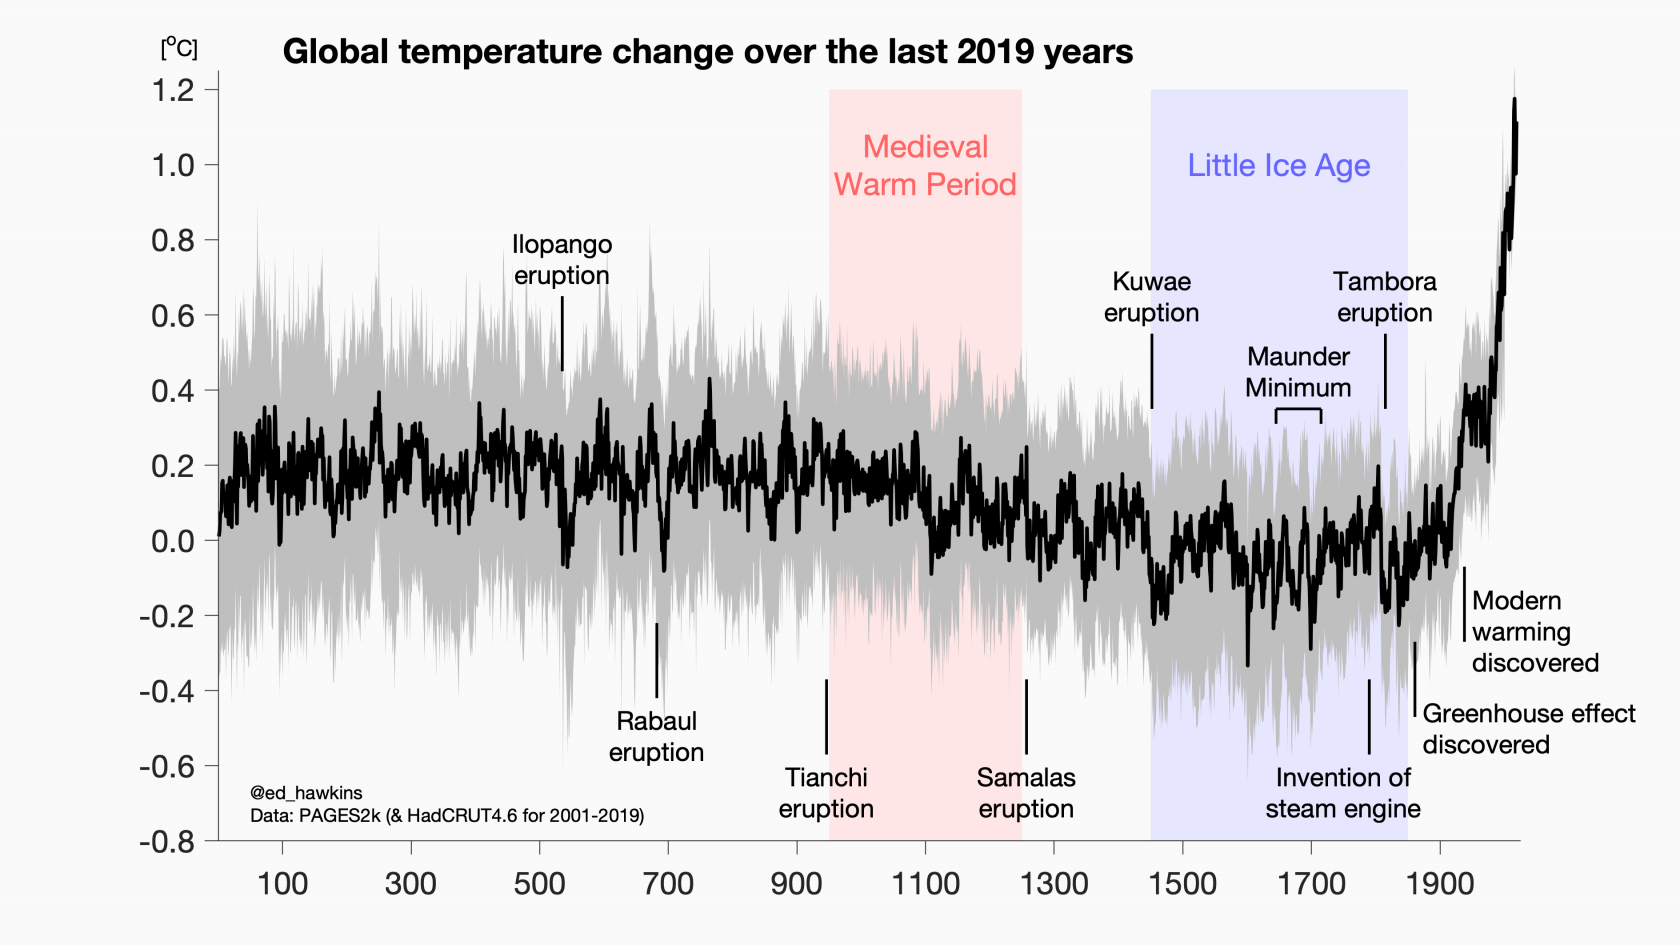 A graph showing global temperature change in the last 2019 years